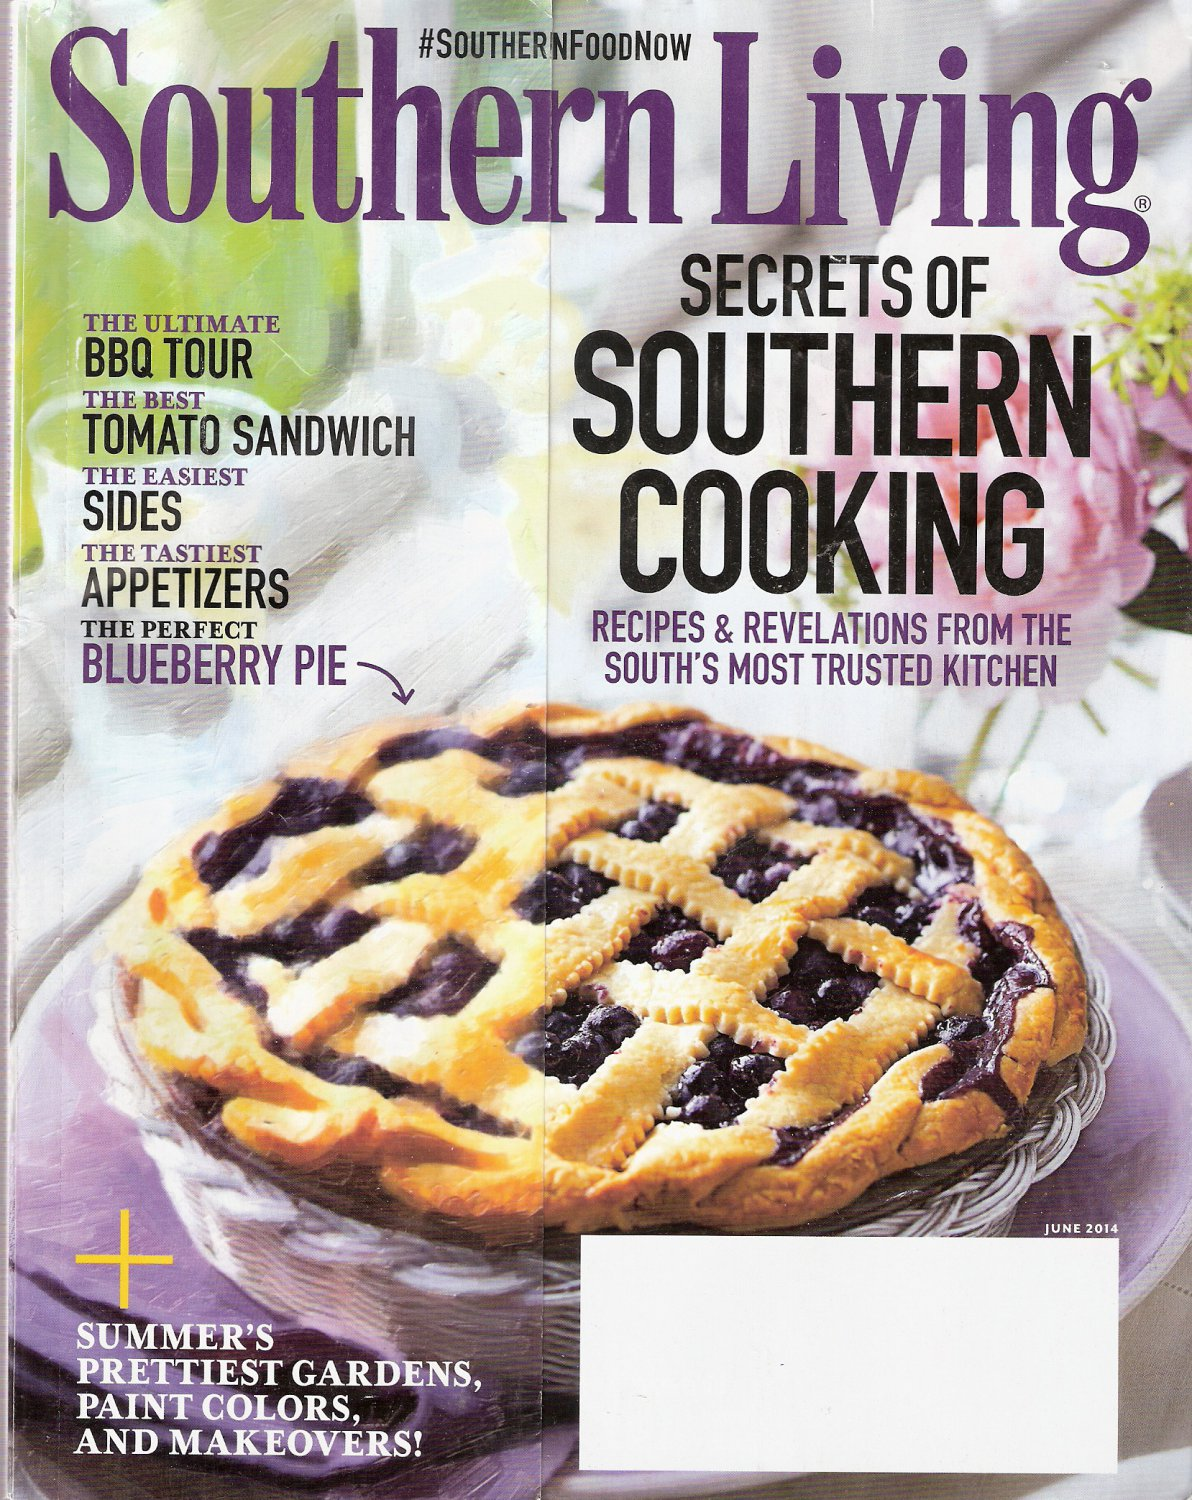 Southern Living Magazine June 2014 Secrets of Southern Cooking